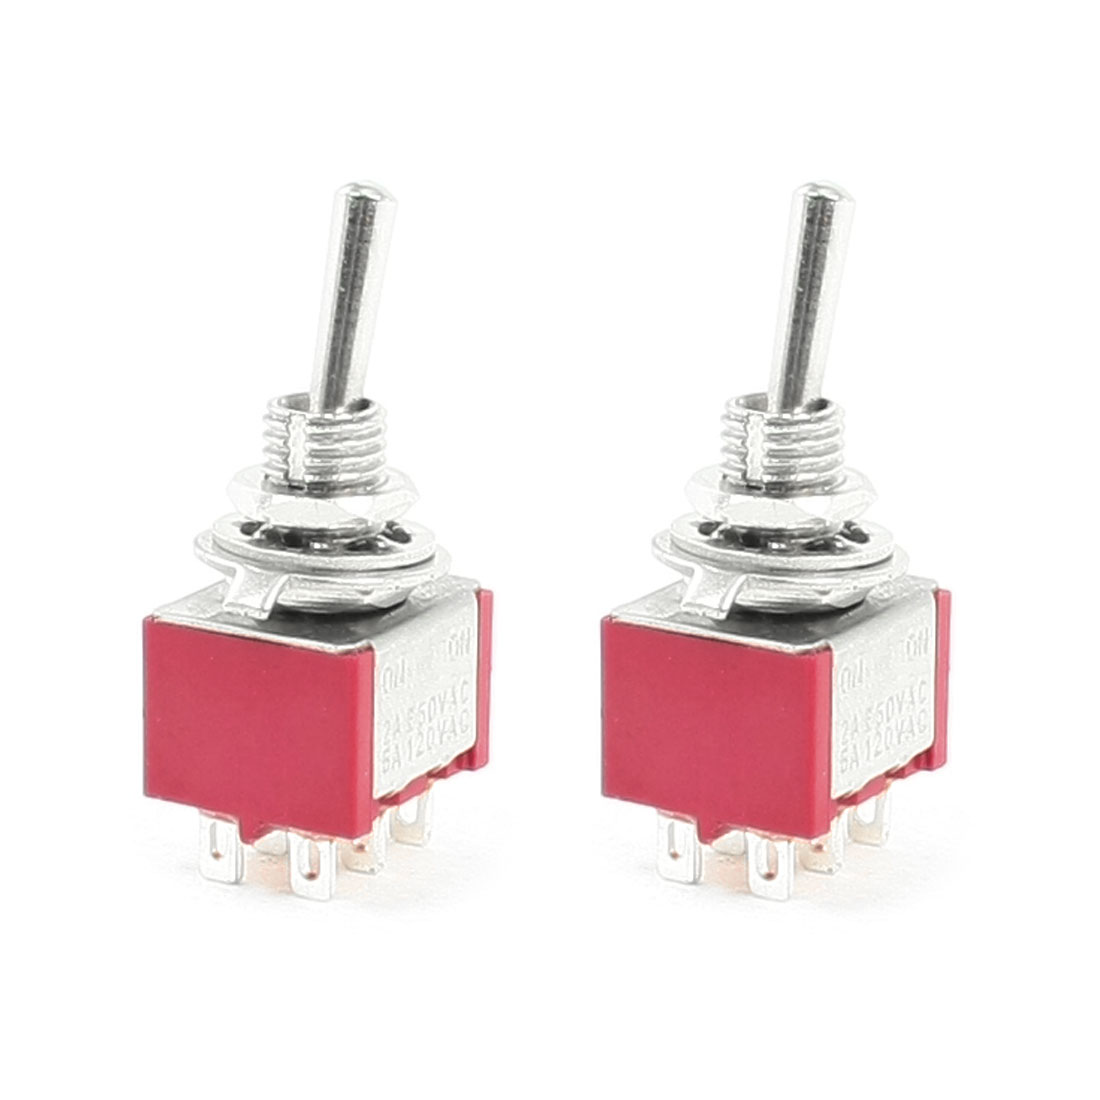 2 Pcs DPDT ON/ON 6 Pin Panel Mounted MTS-202 Toggle Switch 2A/250VAC 5A/120VAC